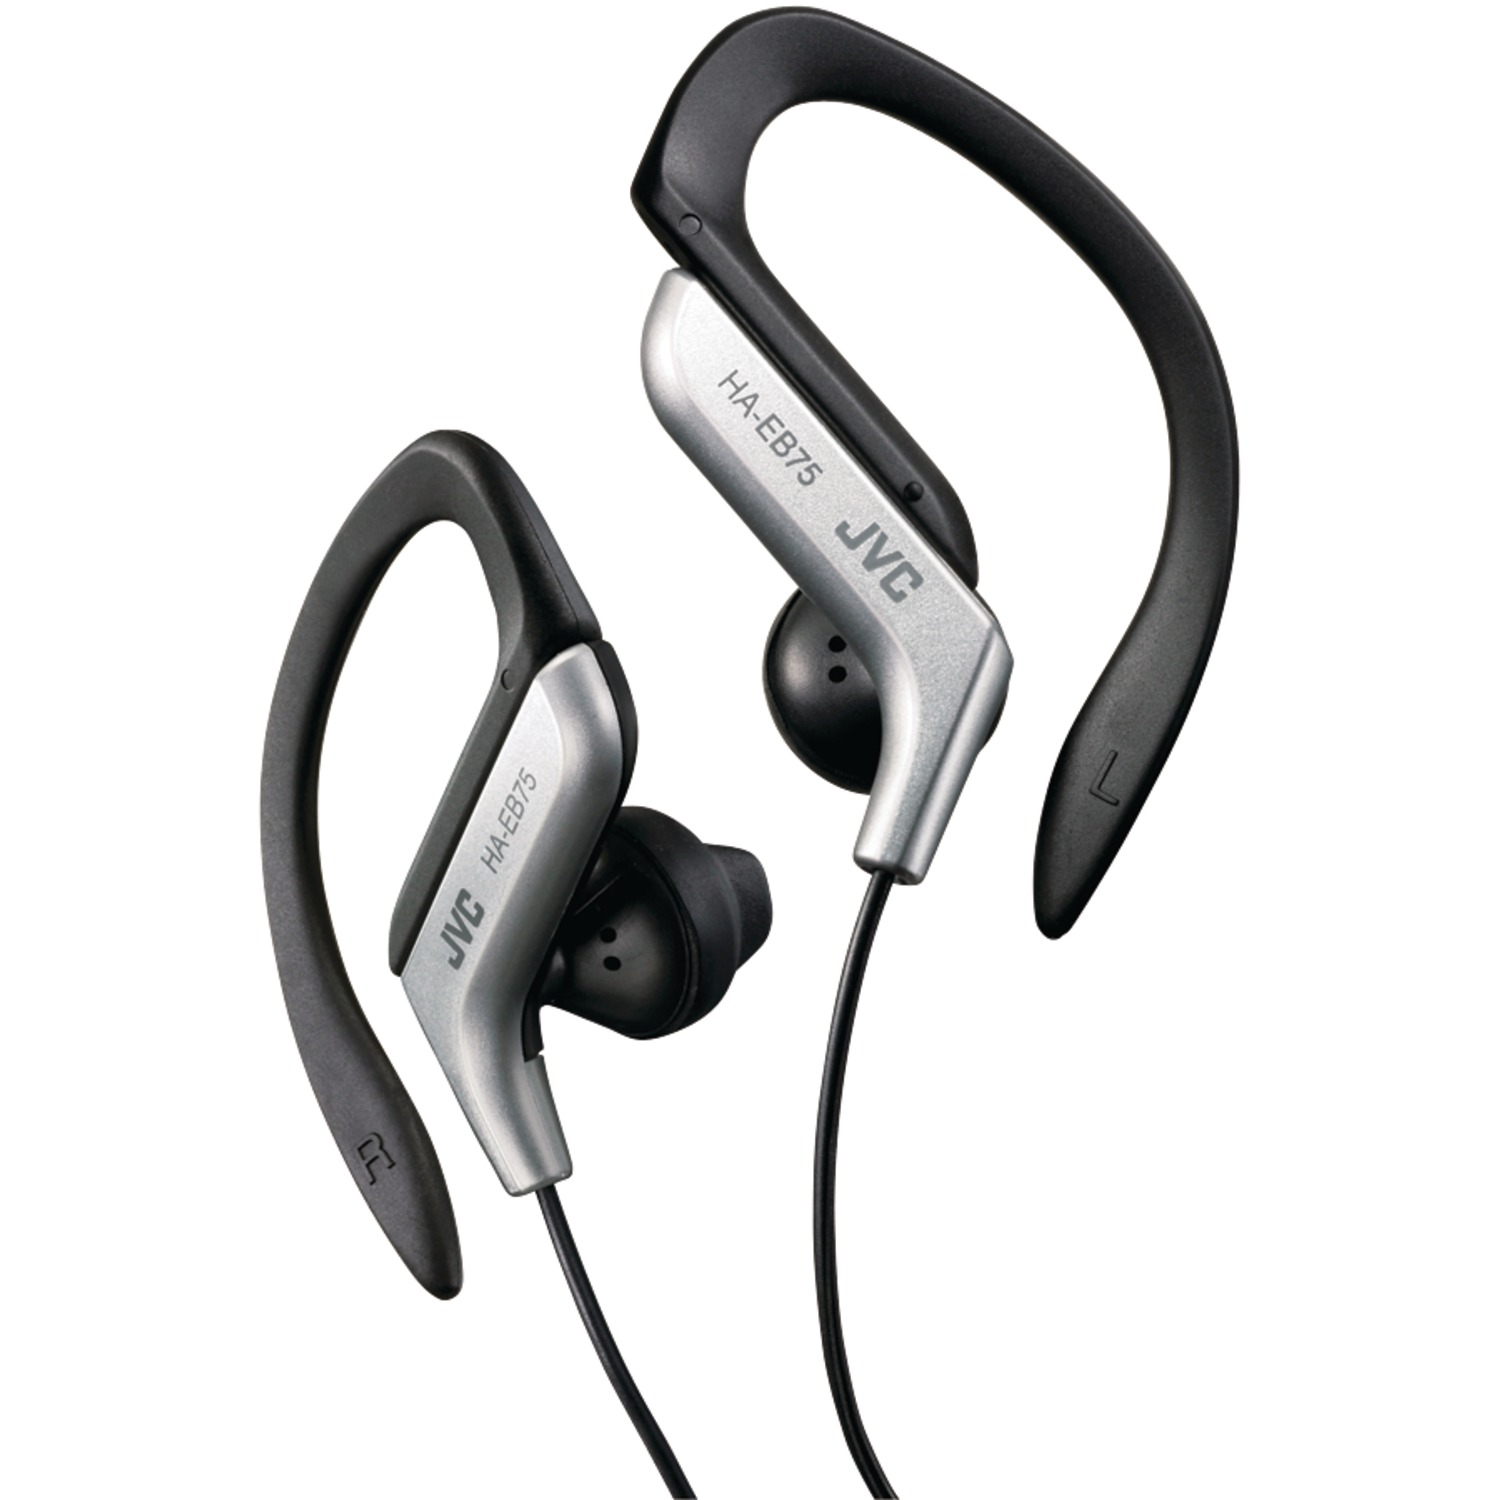 Image for Jvc Ha-Eb75-S - Headphones from Circuit City